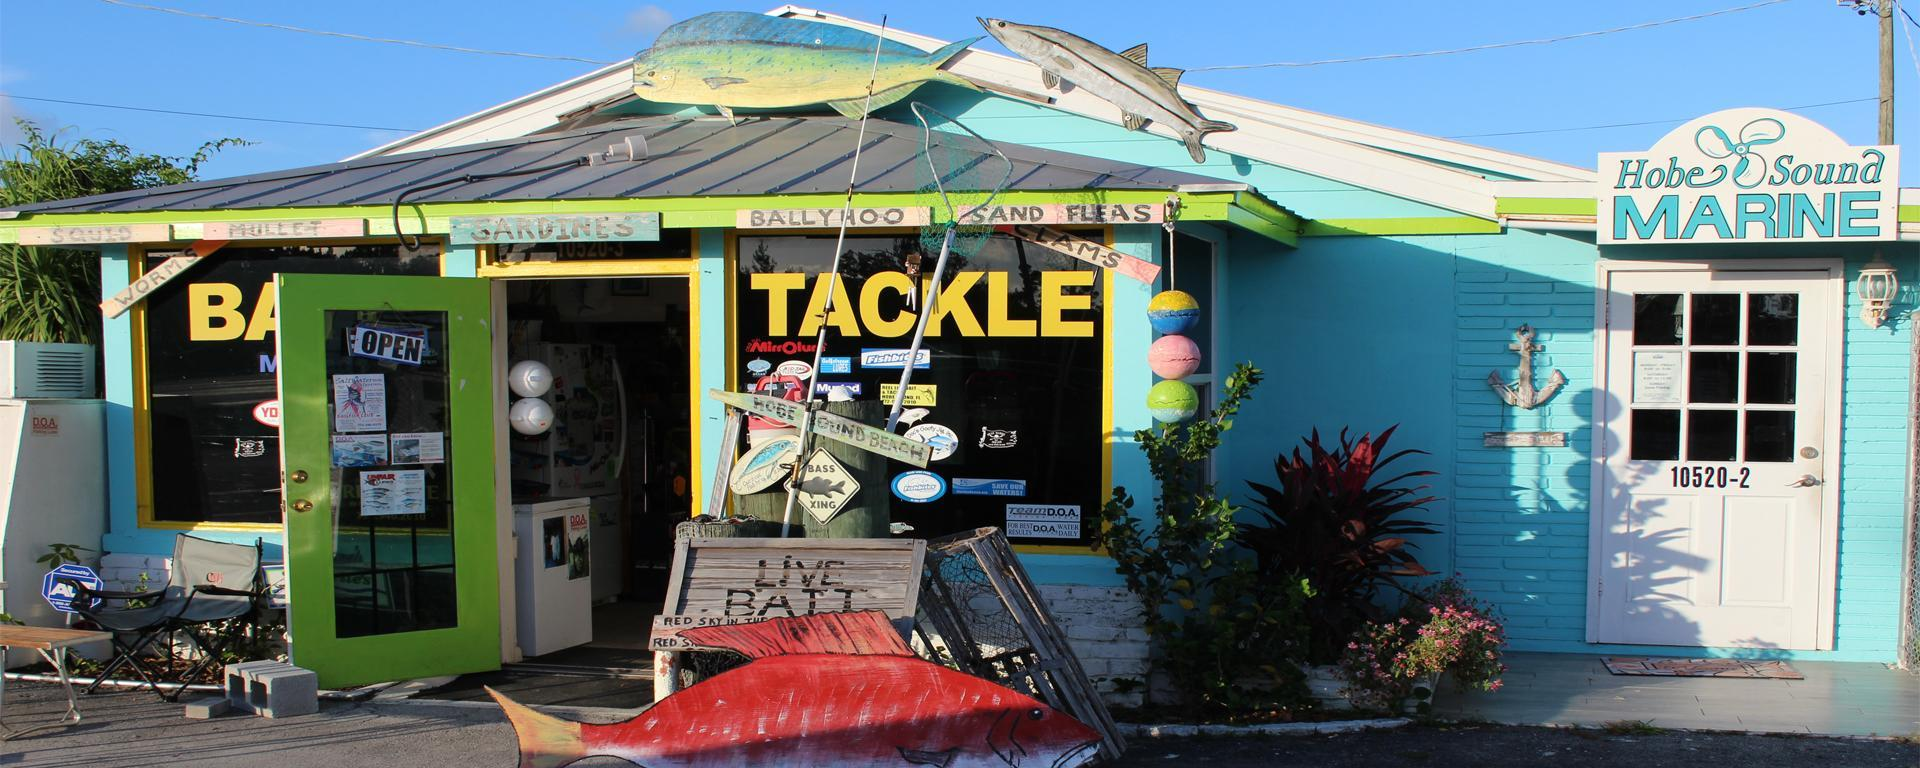 Hobe Sound Bait and Tackle Shop